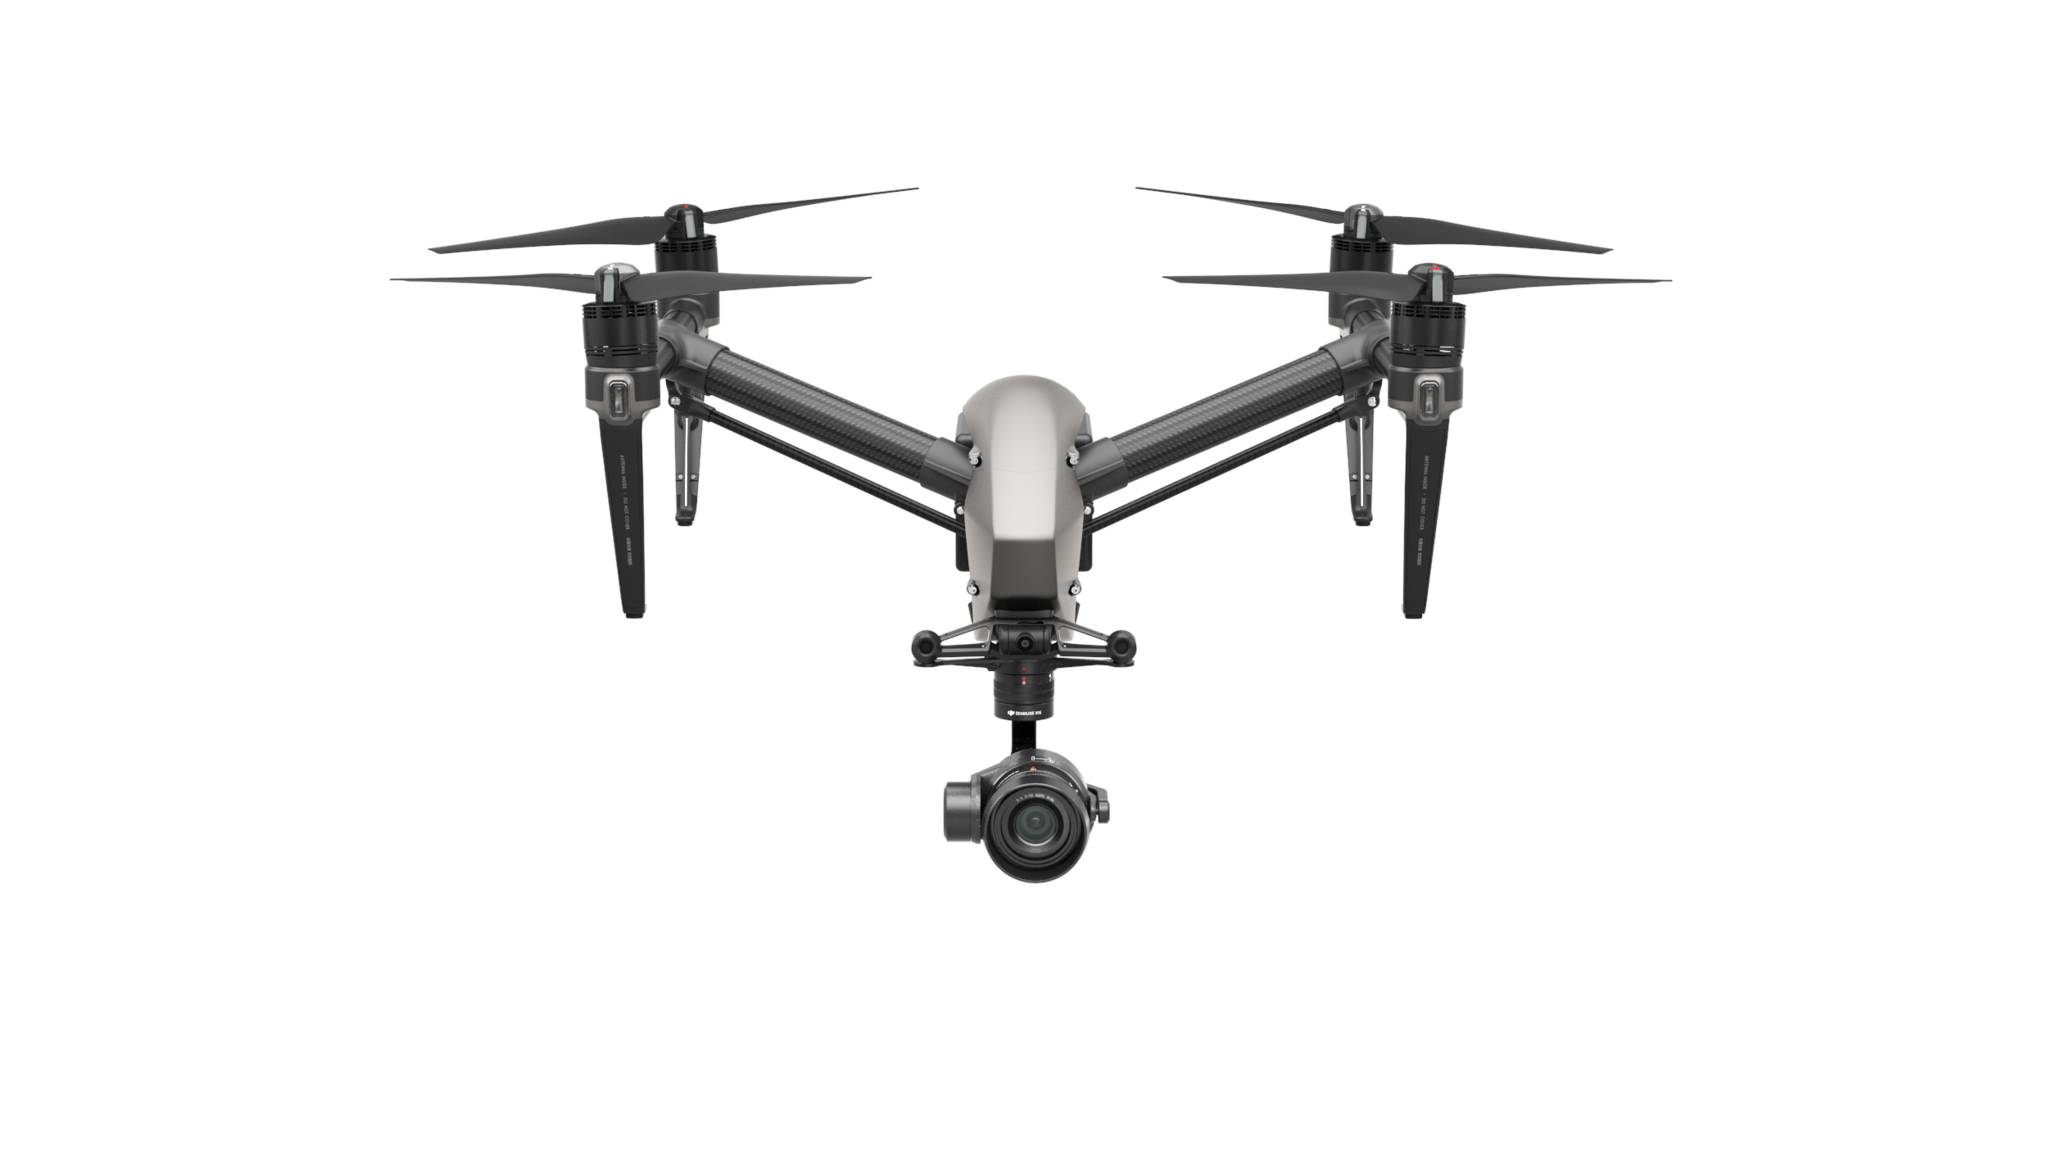 Inspire 2 Professional Combo with Zenmuse X5S.